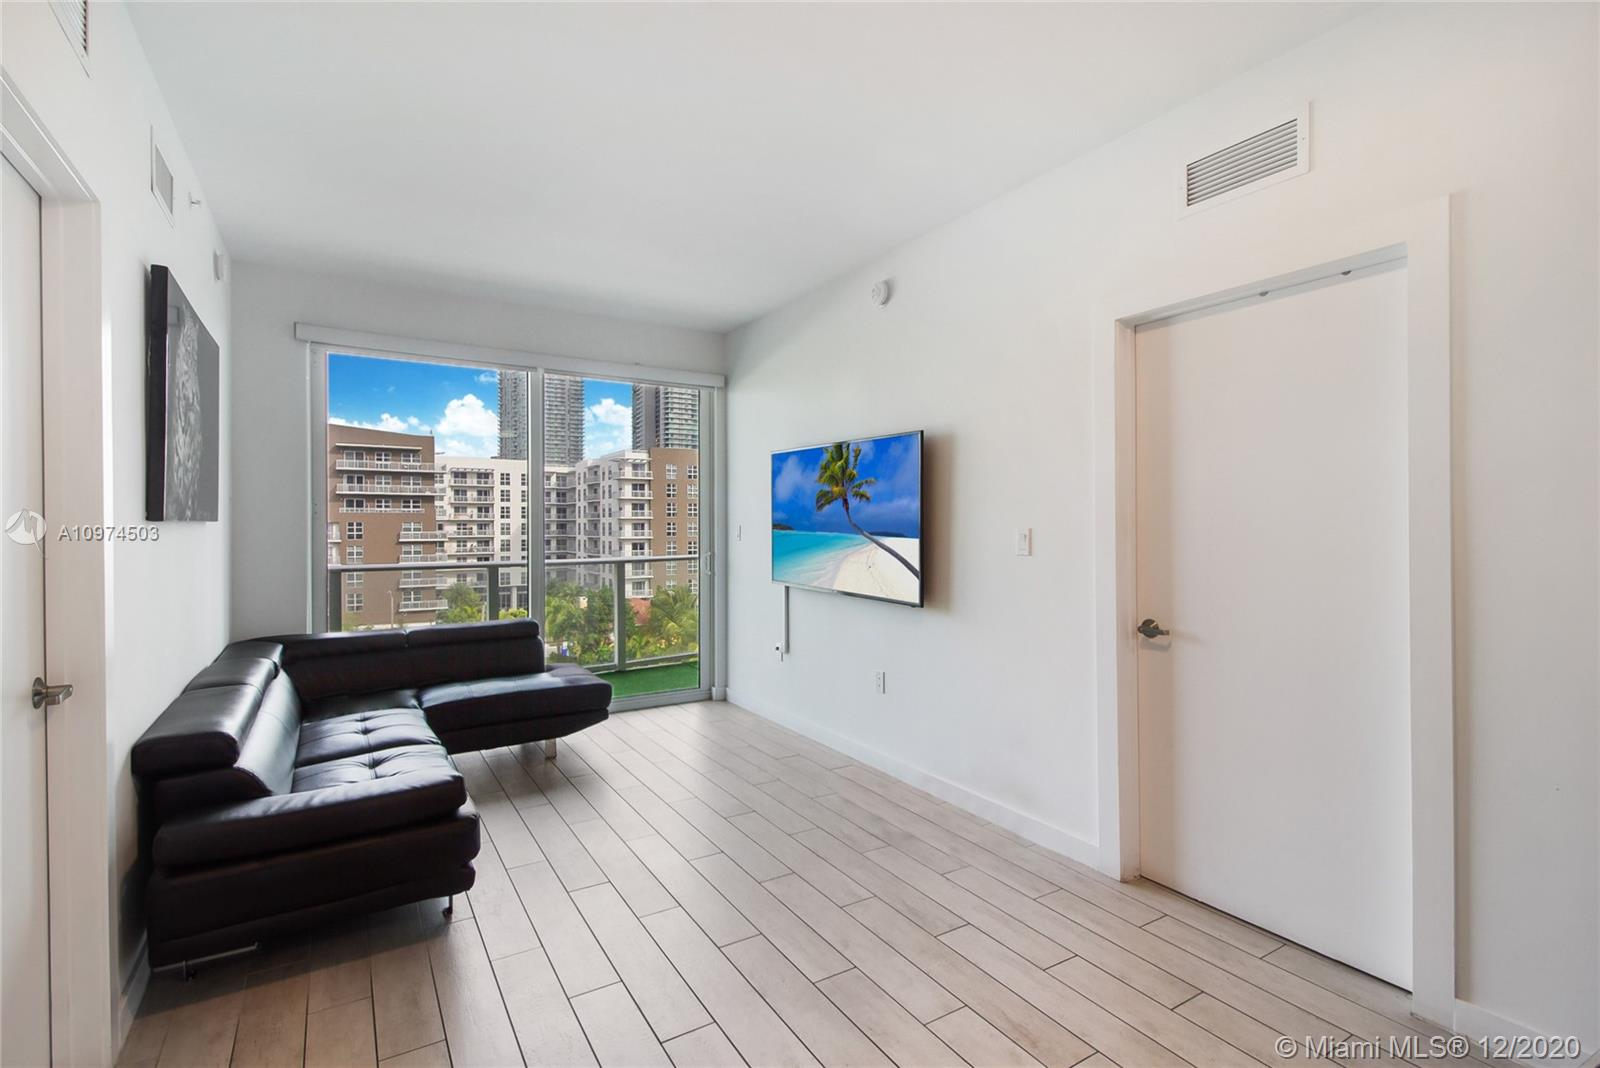 Boutique style building minutes from Downtown, Brickell, Midtown, Design District and much more! Beautiful 2/2 unit in the popular Edgewater neighborhood. Unit features porcelain wood style floors, floor to ceiling impact windows and sliding doors and 9 foot ceilings. Residents of 26 Edgewater can enjoy amenities such as rooftop pool, lounge and sun deck, fitness center and party room